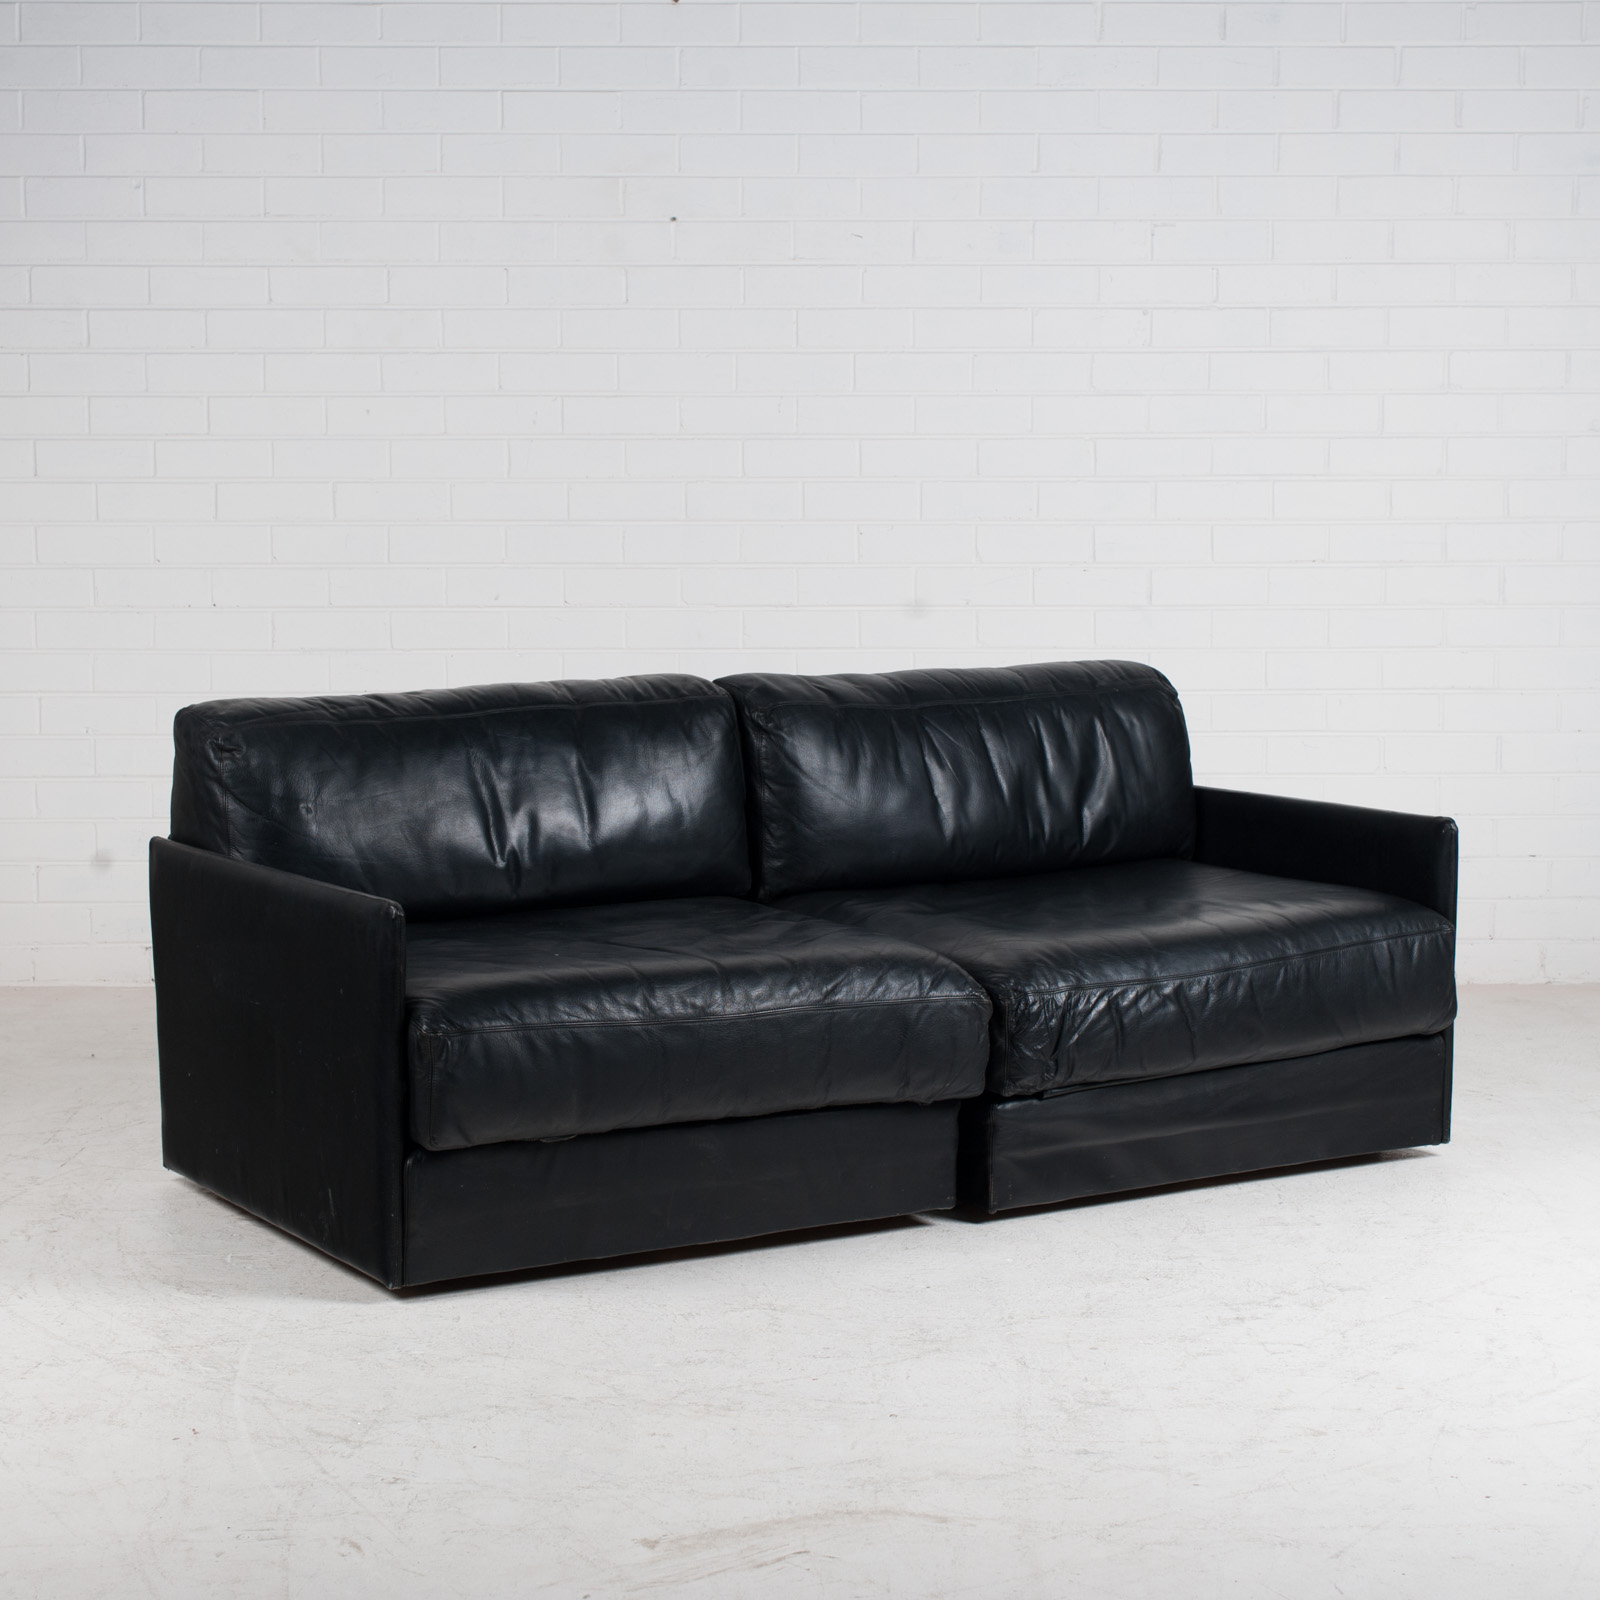 Ds 76 2 Seat Sofa By De Sede In Black Leather 1970s Switzerland 03